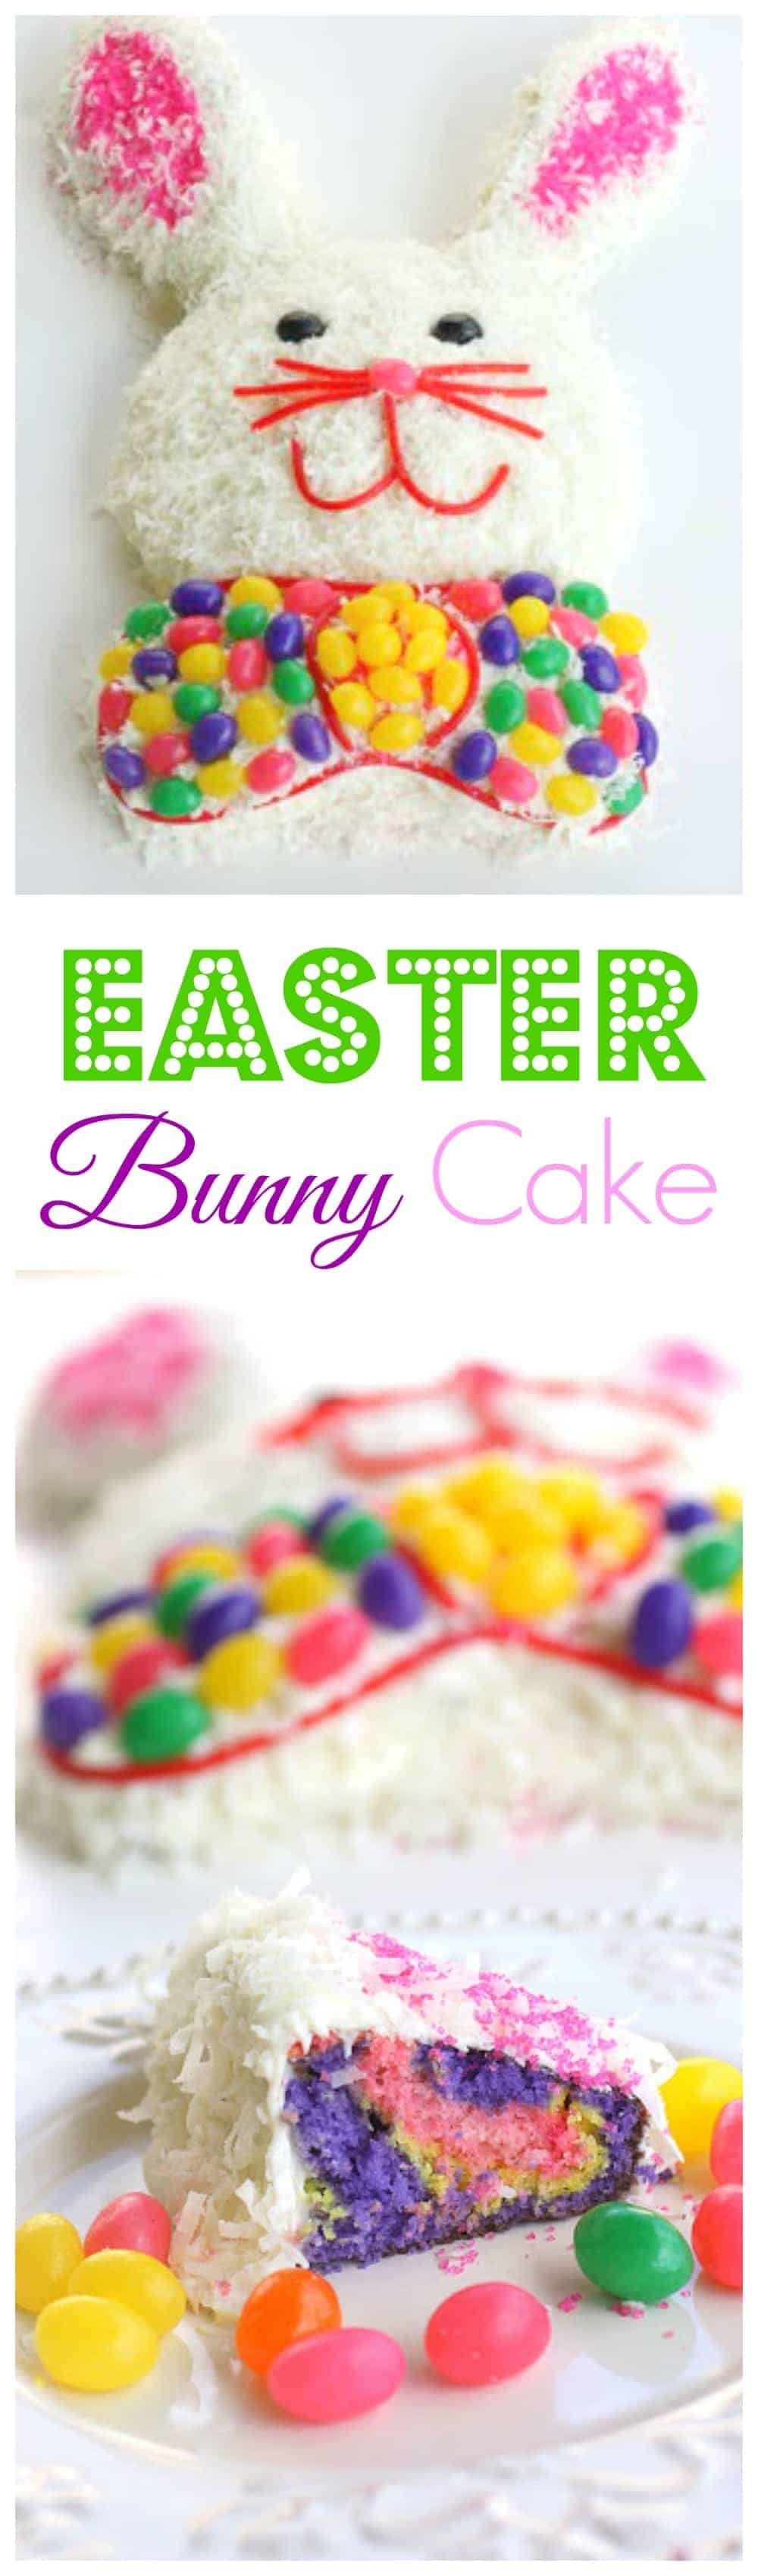 Easter Bunny Cake - so easy and always a hit with everyone for Easter. #easter #bunny #cake #recipe #dessert #easy